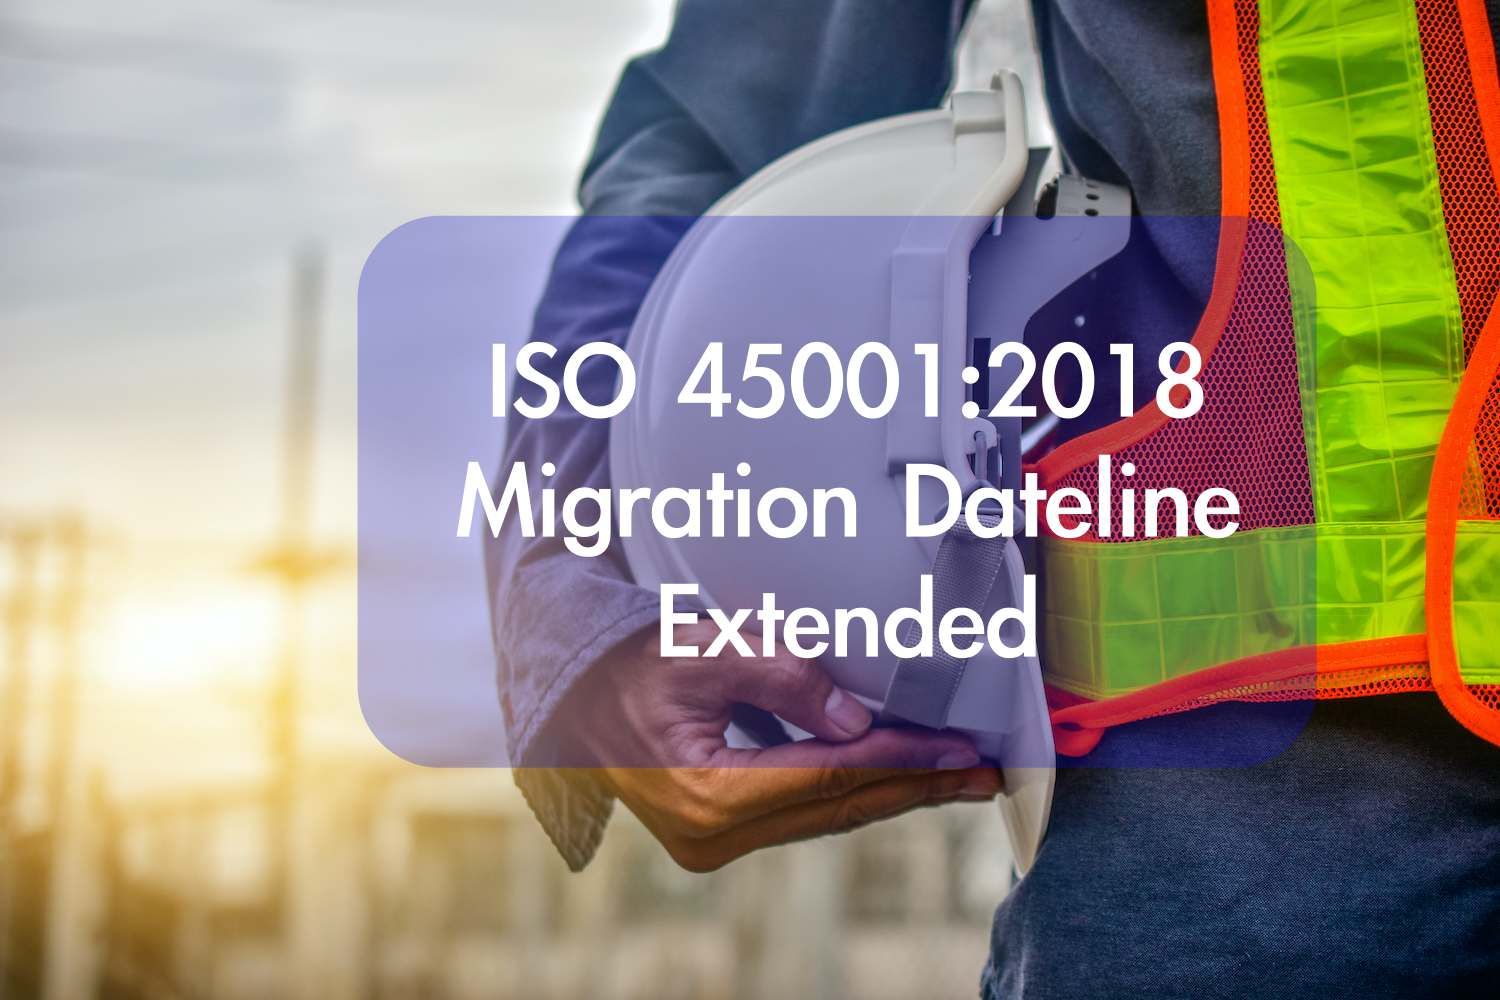 iso 45001:2018 transition